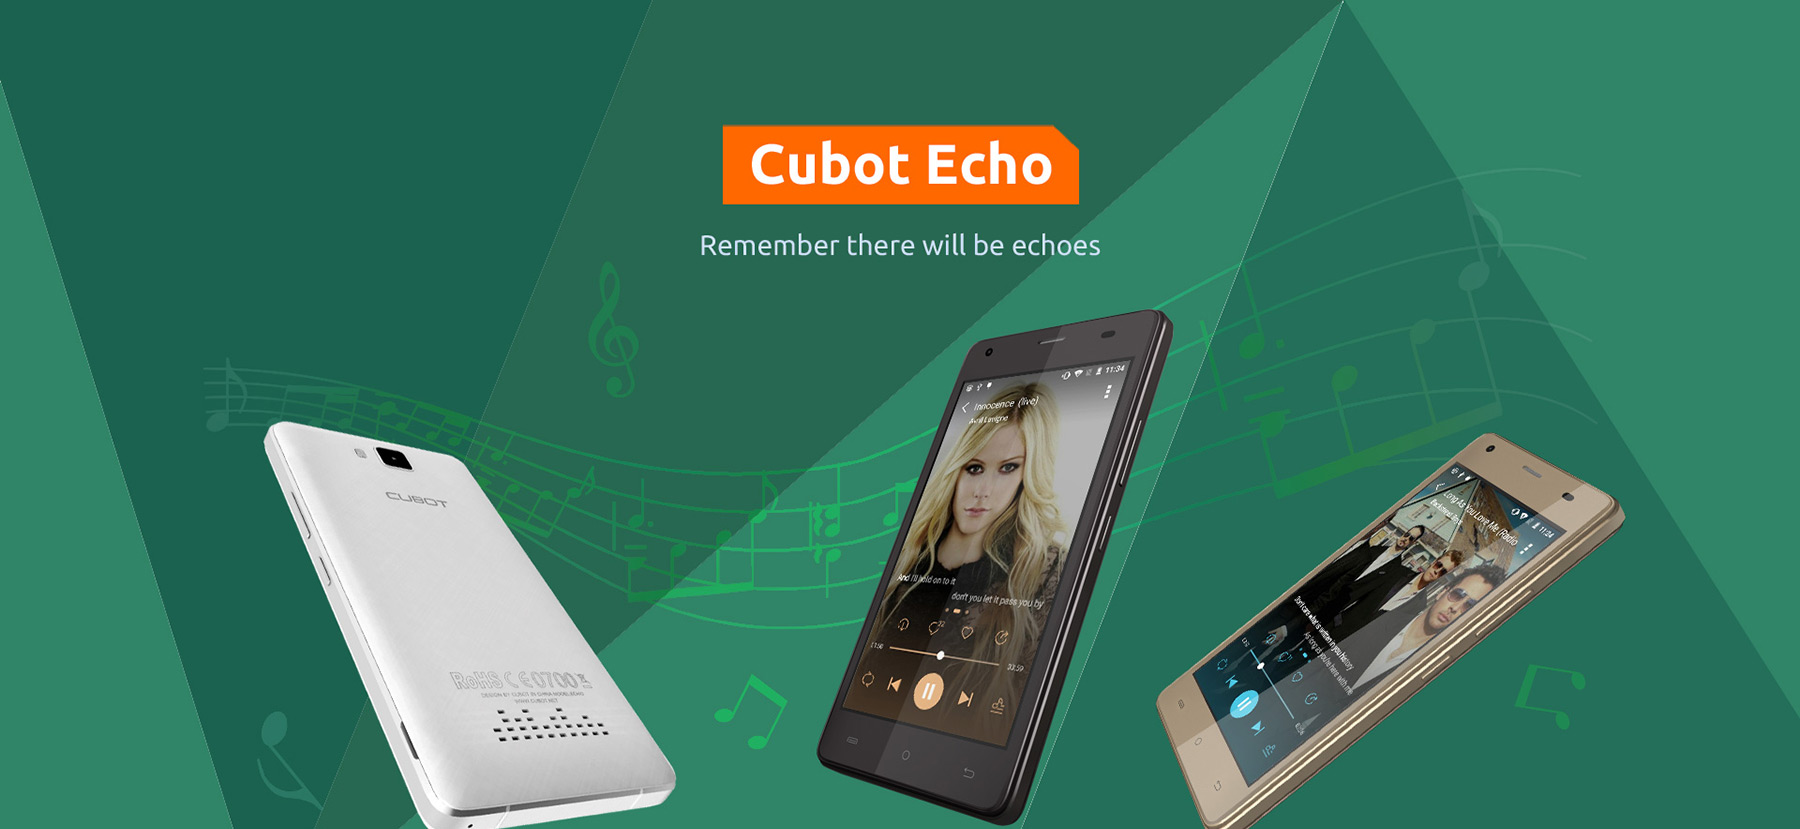 CUBOT Echo Android 6.0 5.0 inch 3G Smartphone MTK6580 Quad Core 1.3GHz 2GB RAM 16GB ROM 13.0MP Rear Camera OTG